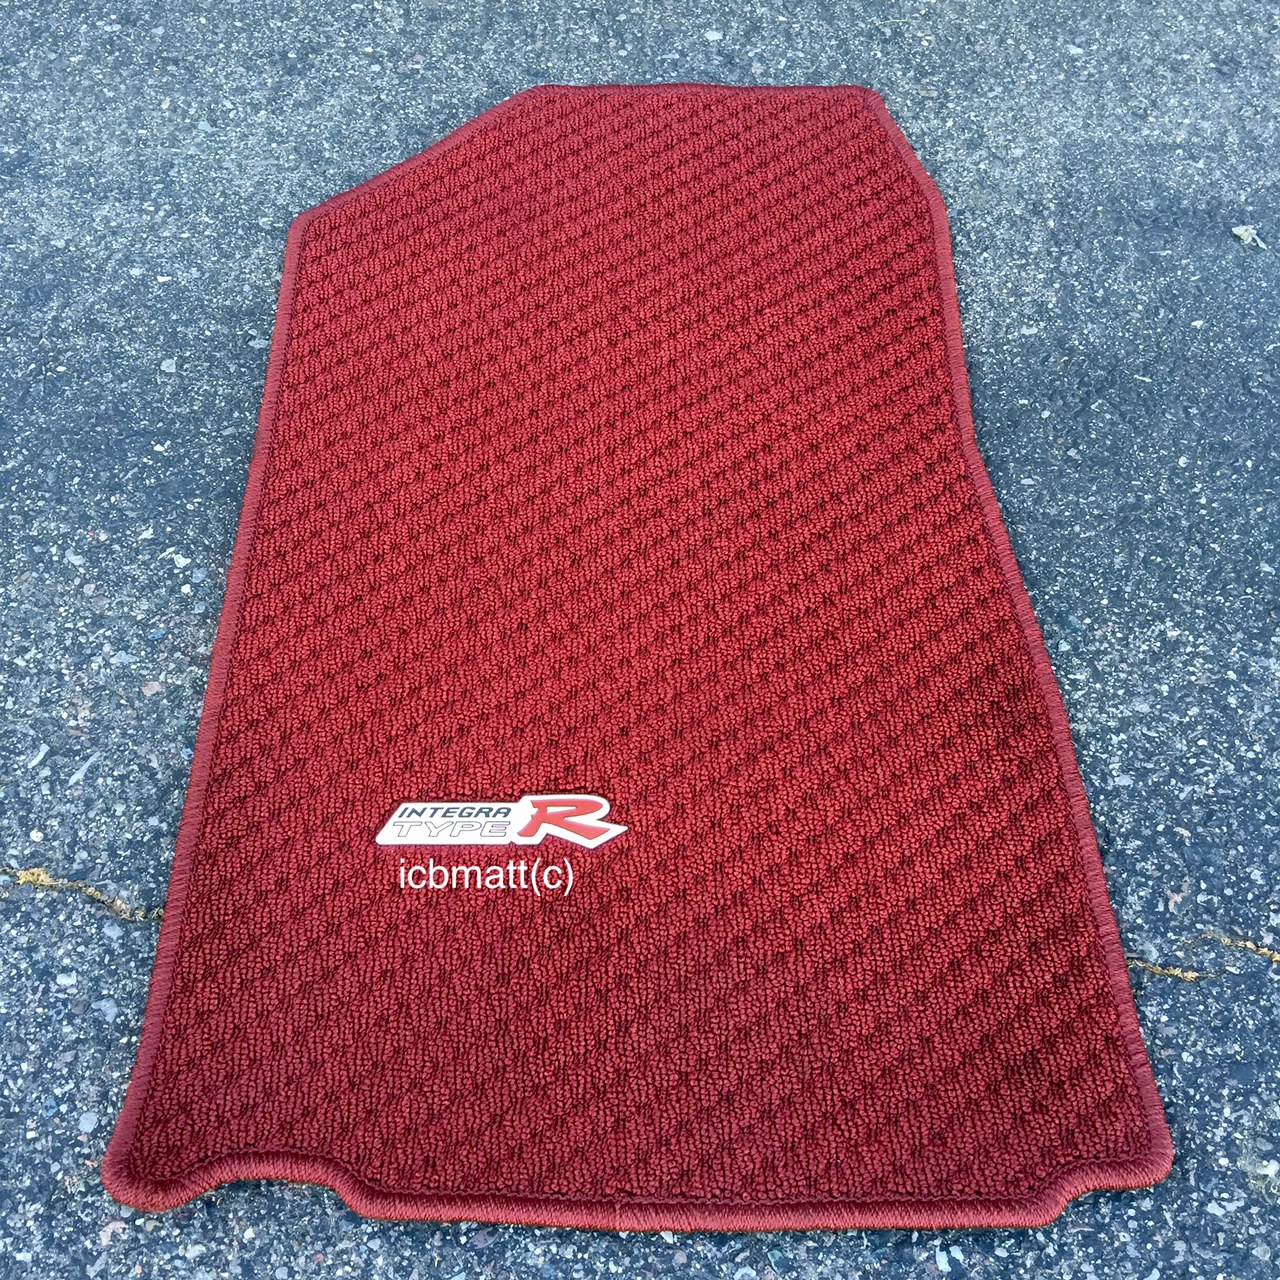 Floor mats used - Pictures Below Is The Exact Floor Mats You Will Be Receiving Condition Is Used